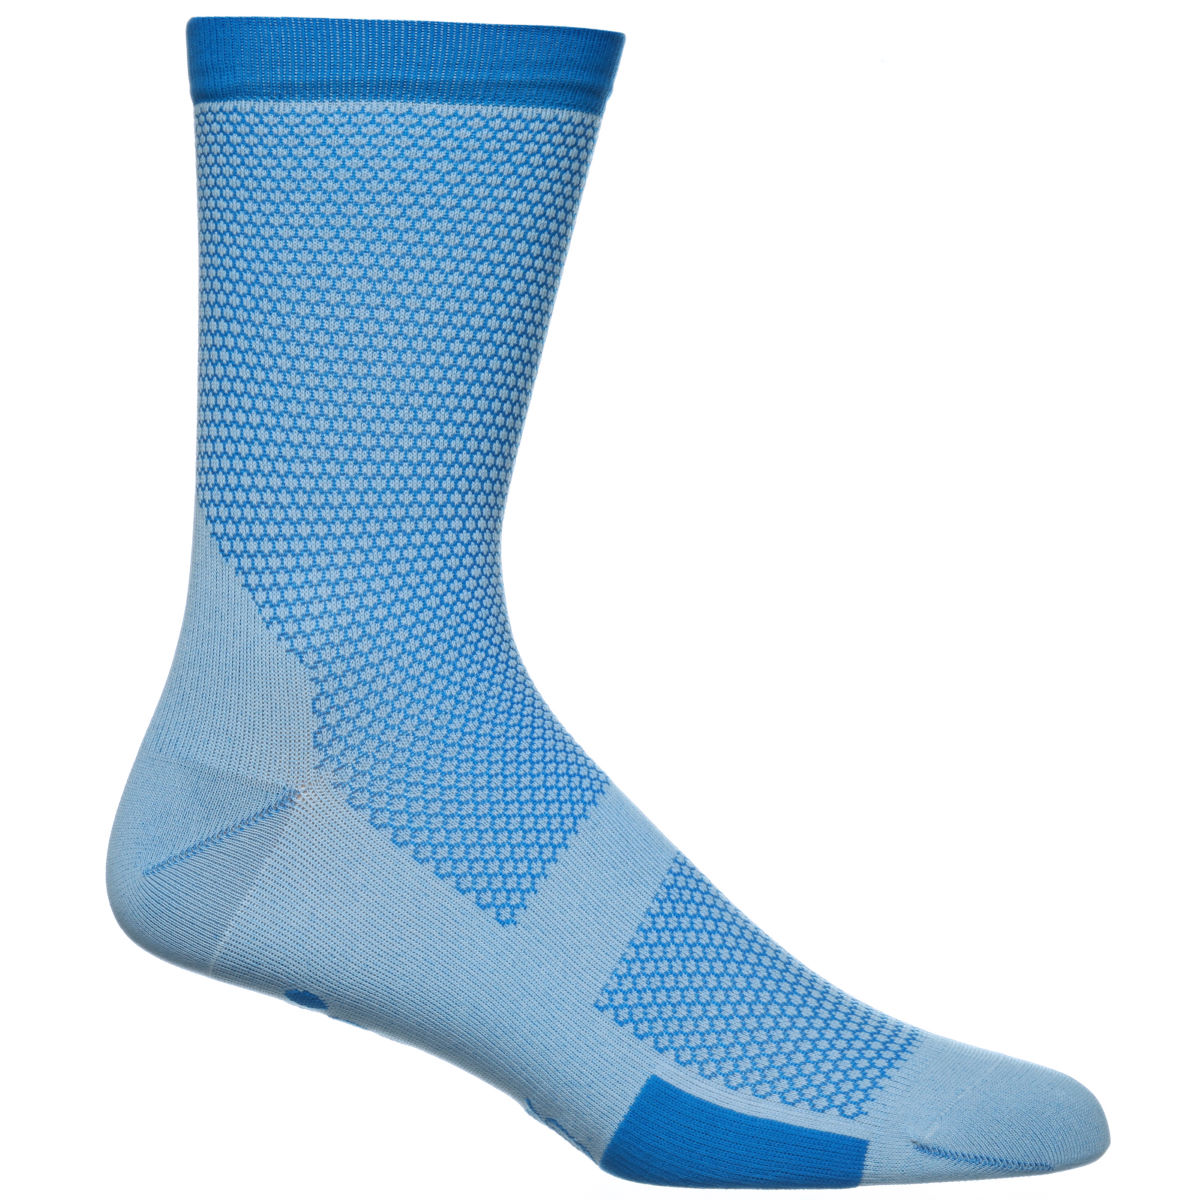 Calcetines Isadore Bonette Climbers - Calcetines de ciclismo